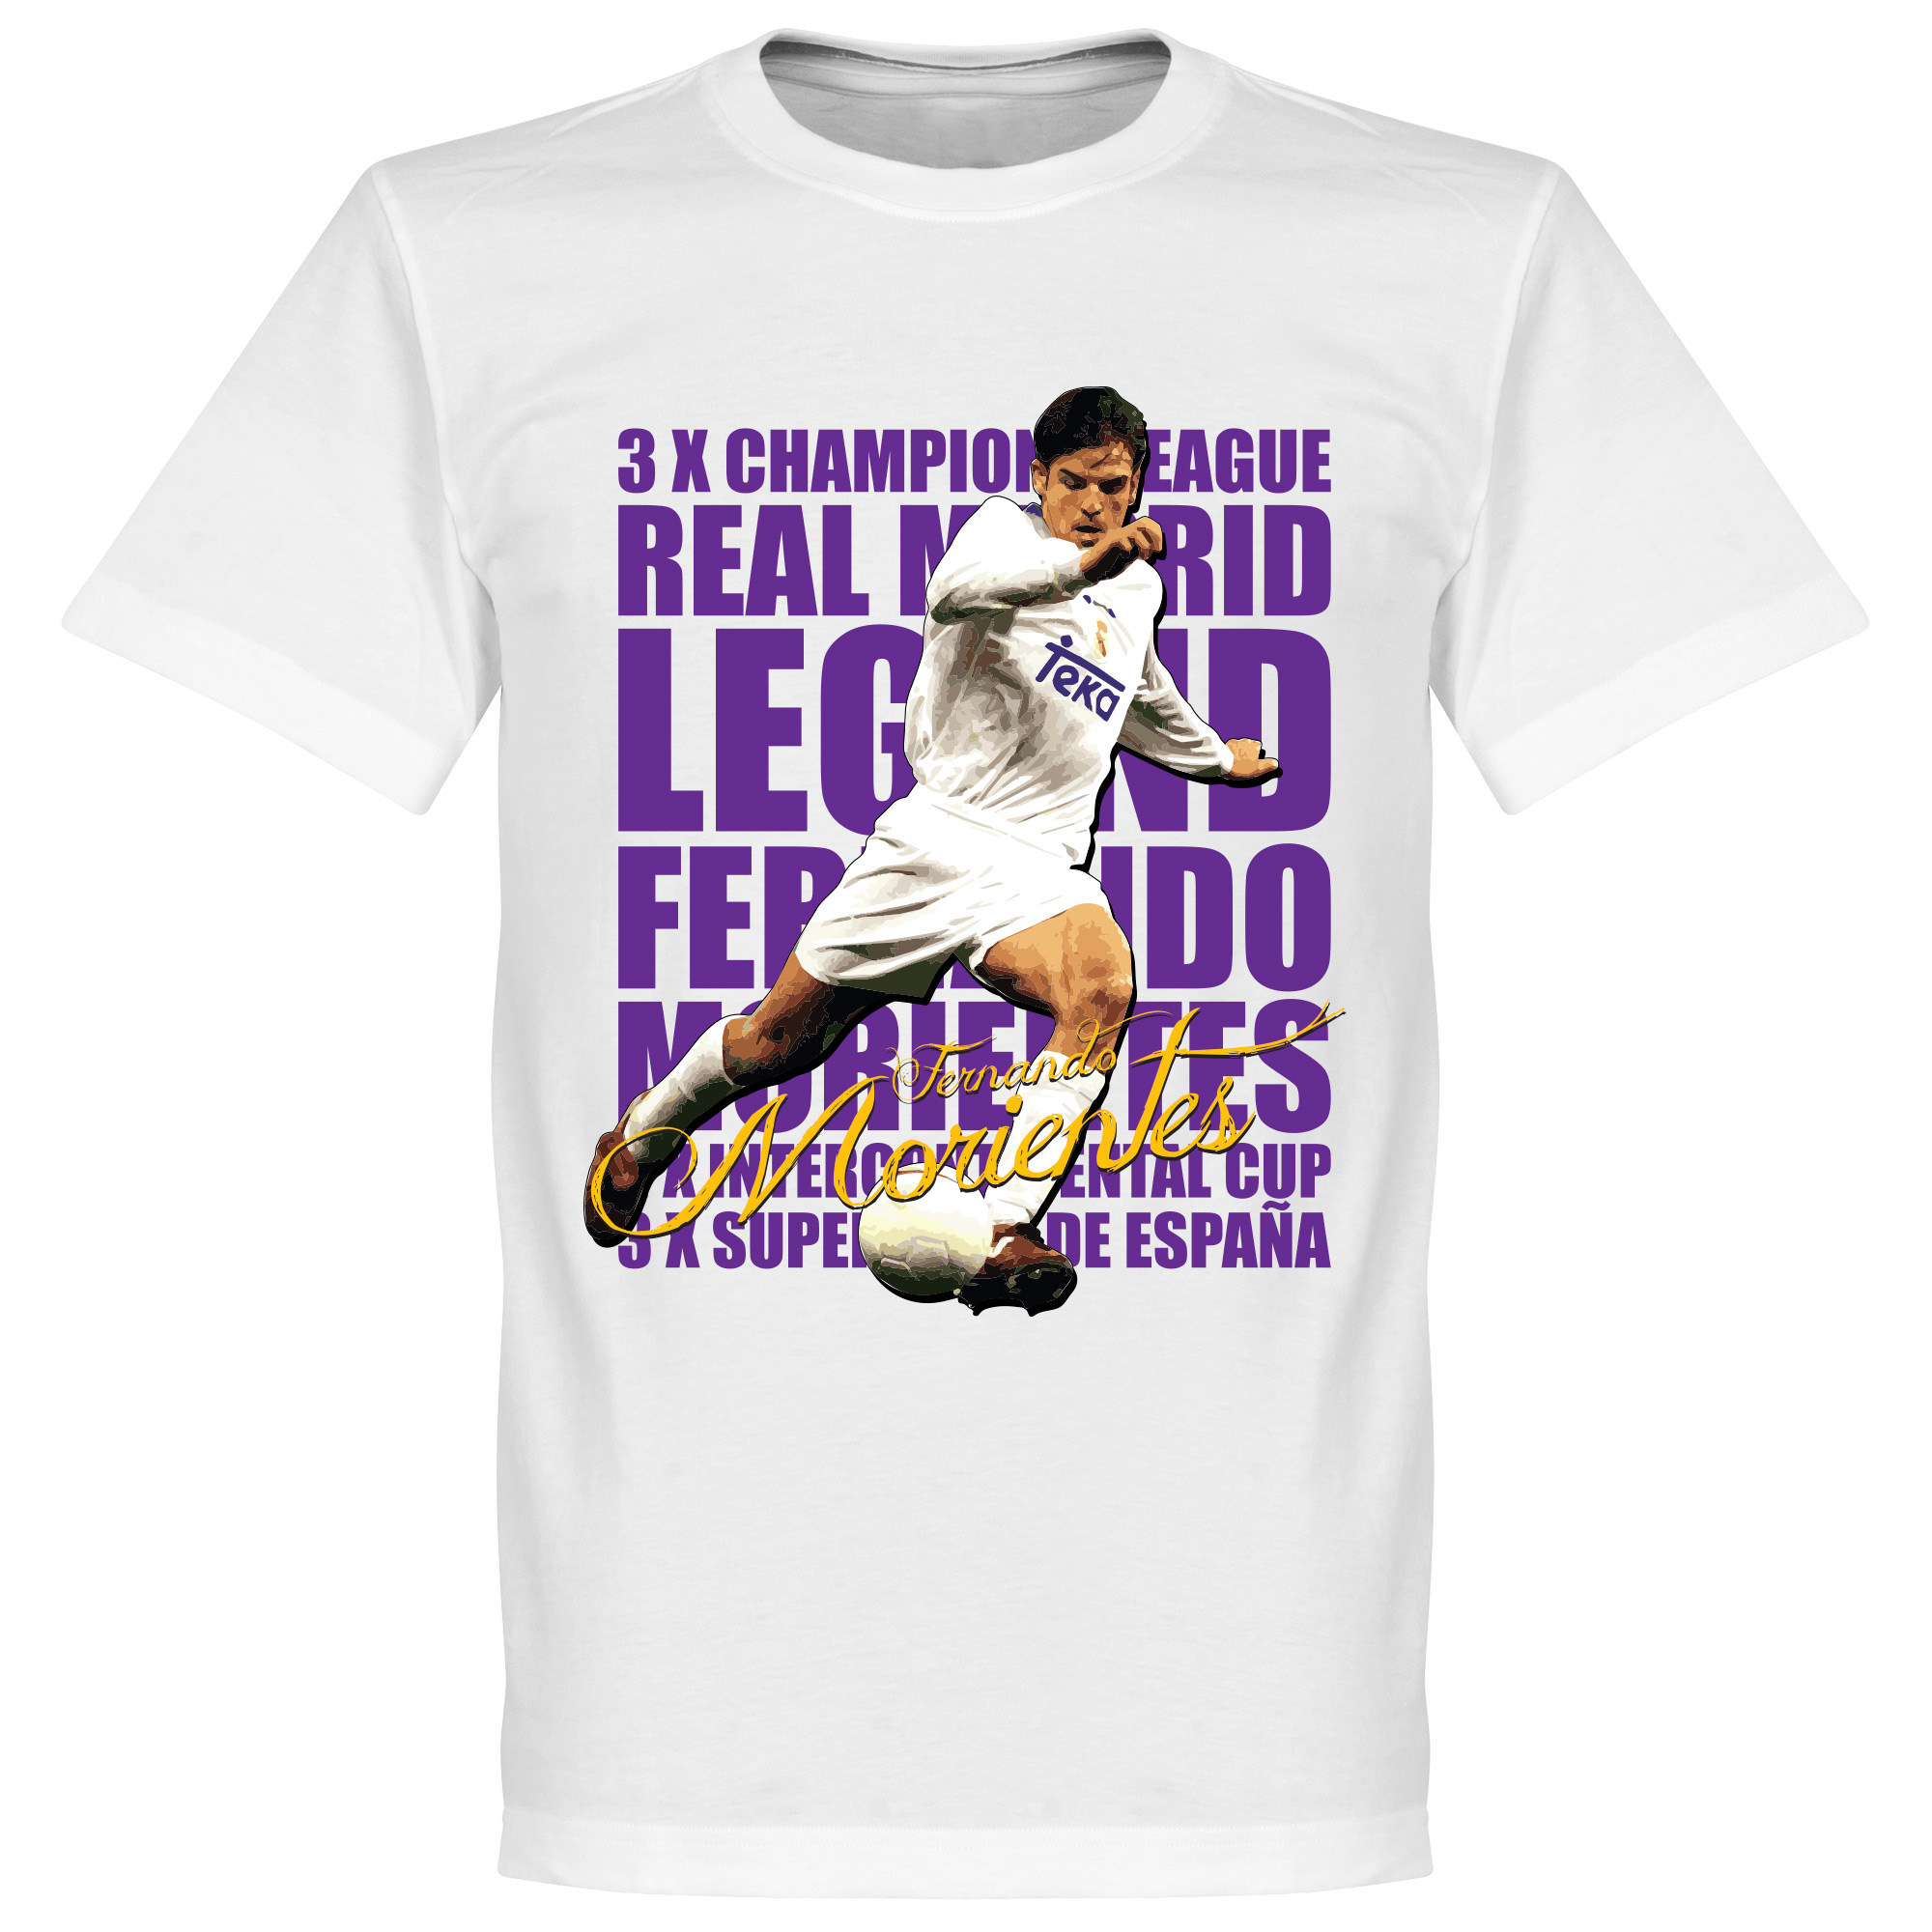 Morientes Legend Tee - White - XL